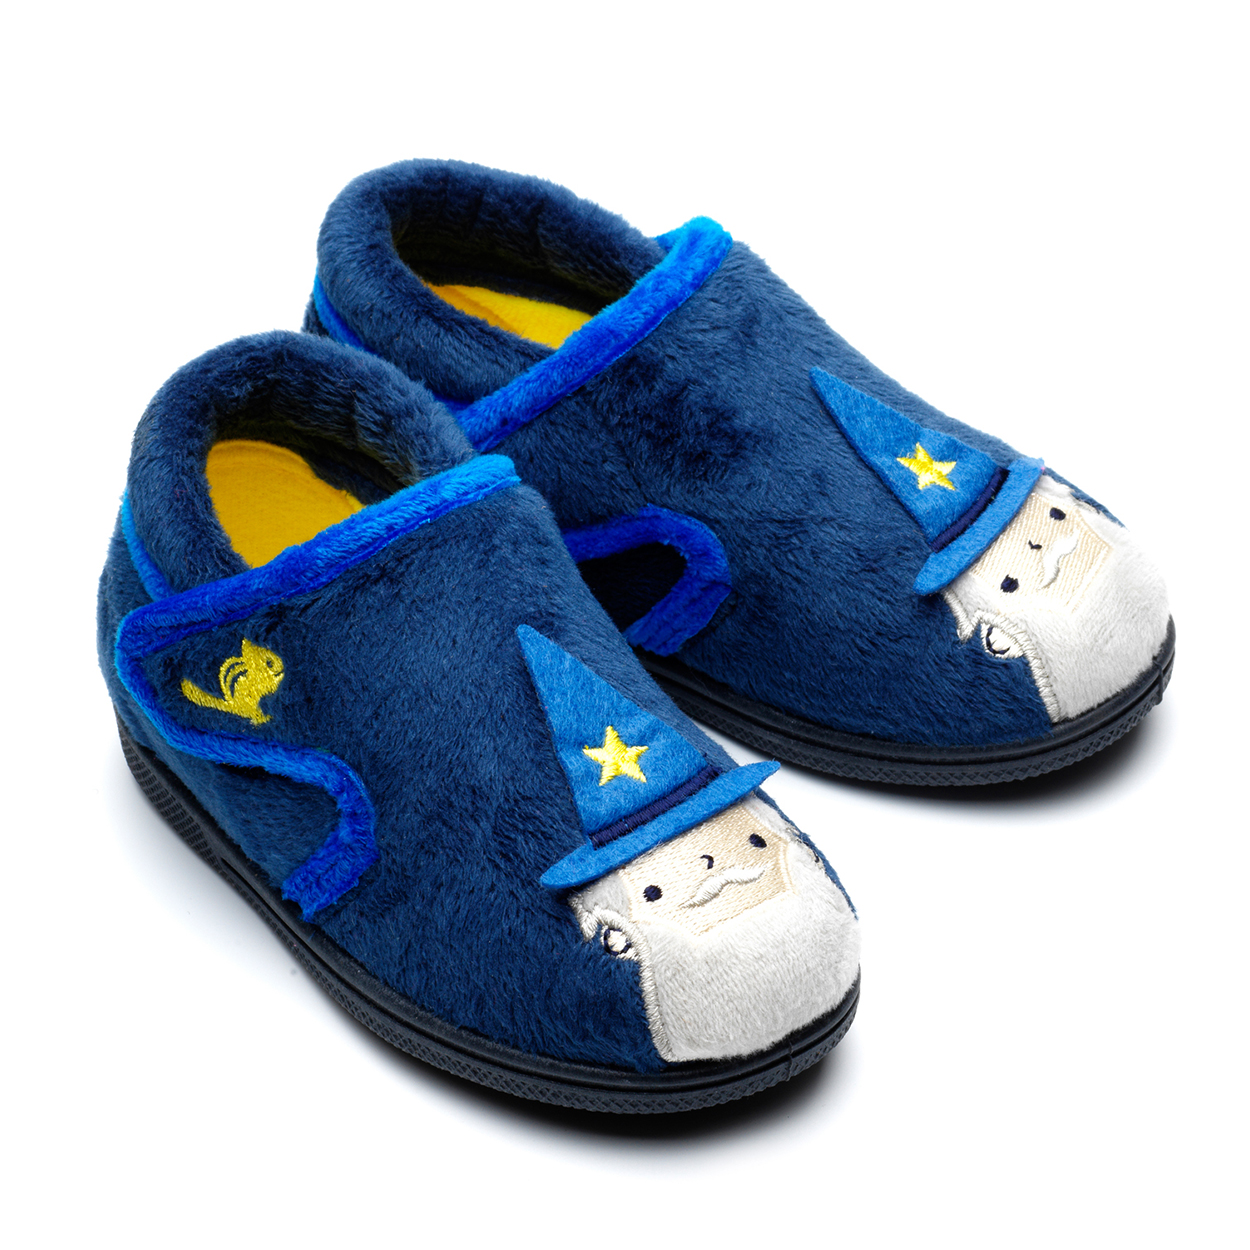 Chipmunks Abracadabra Wizard Navy Slippers